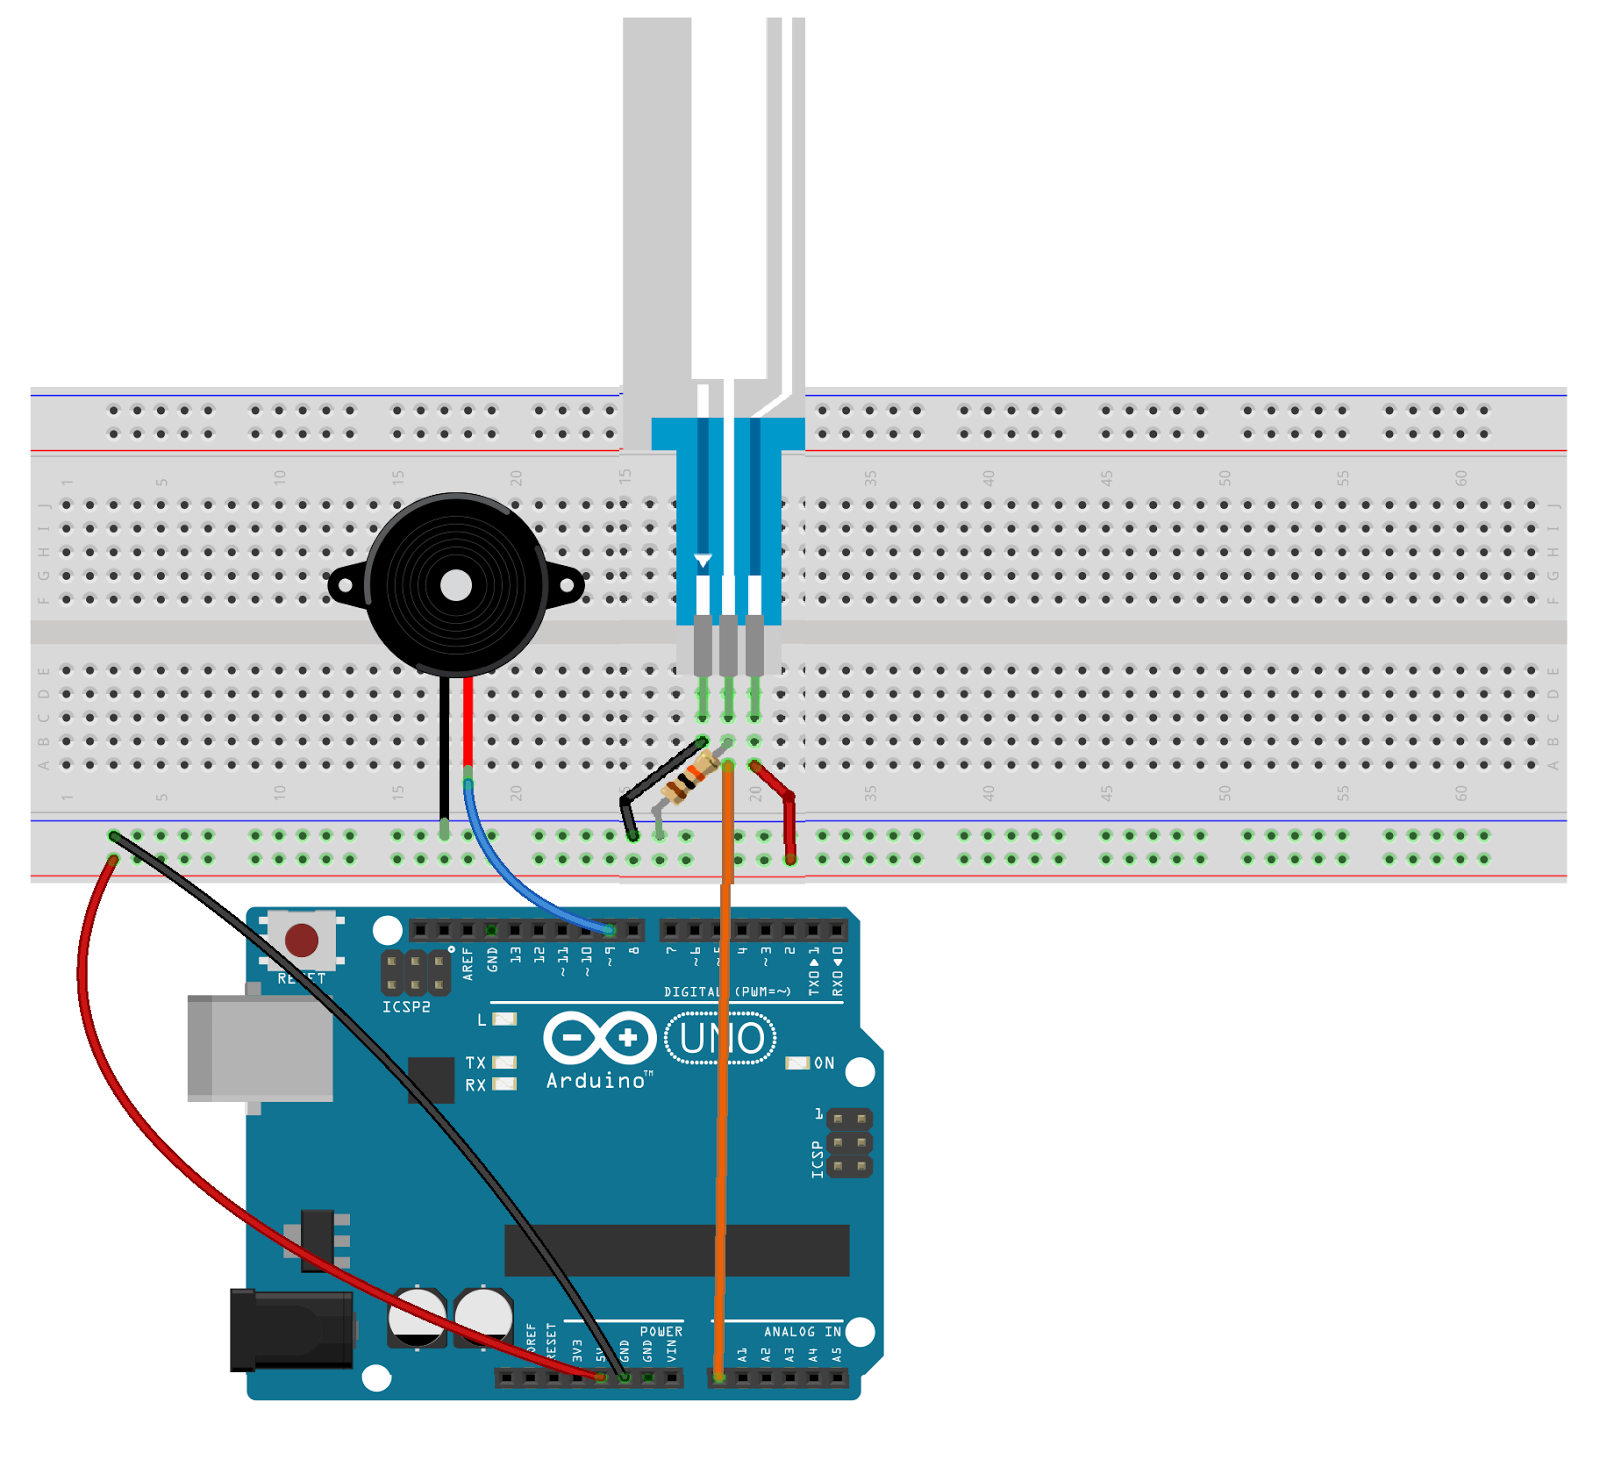 Cans Robotics Arduino Blog Buzzer Control By Using A Soft Circuit Diagram Potentiometer The Diagrams One Made On Digital Environment Other Is Implemented And Datasheet Of Shift Register Can Be Seen Below